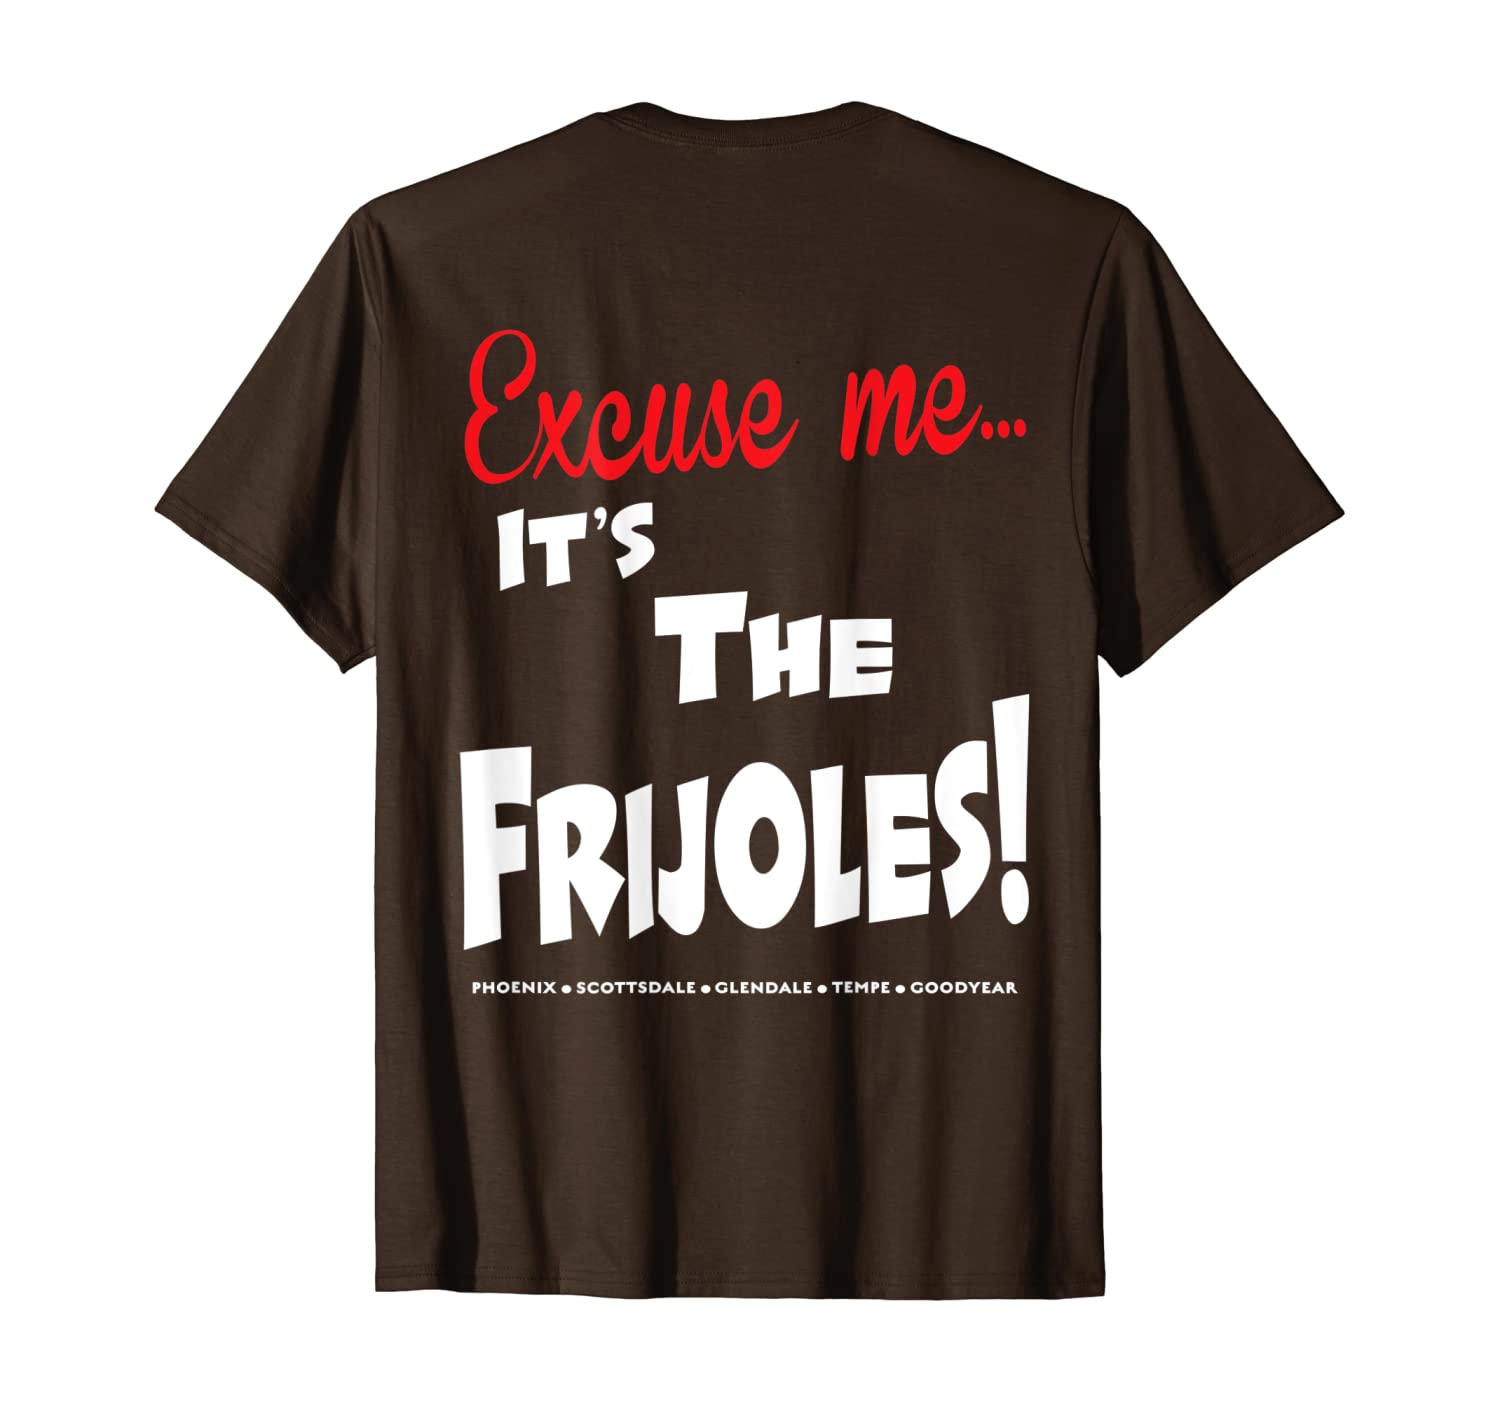 Amazon Com Classic Excuse Me Frijoles Shirt Clothing There are two main uses of this phrases: amazon com